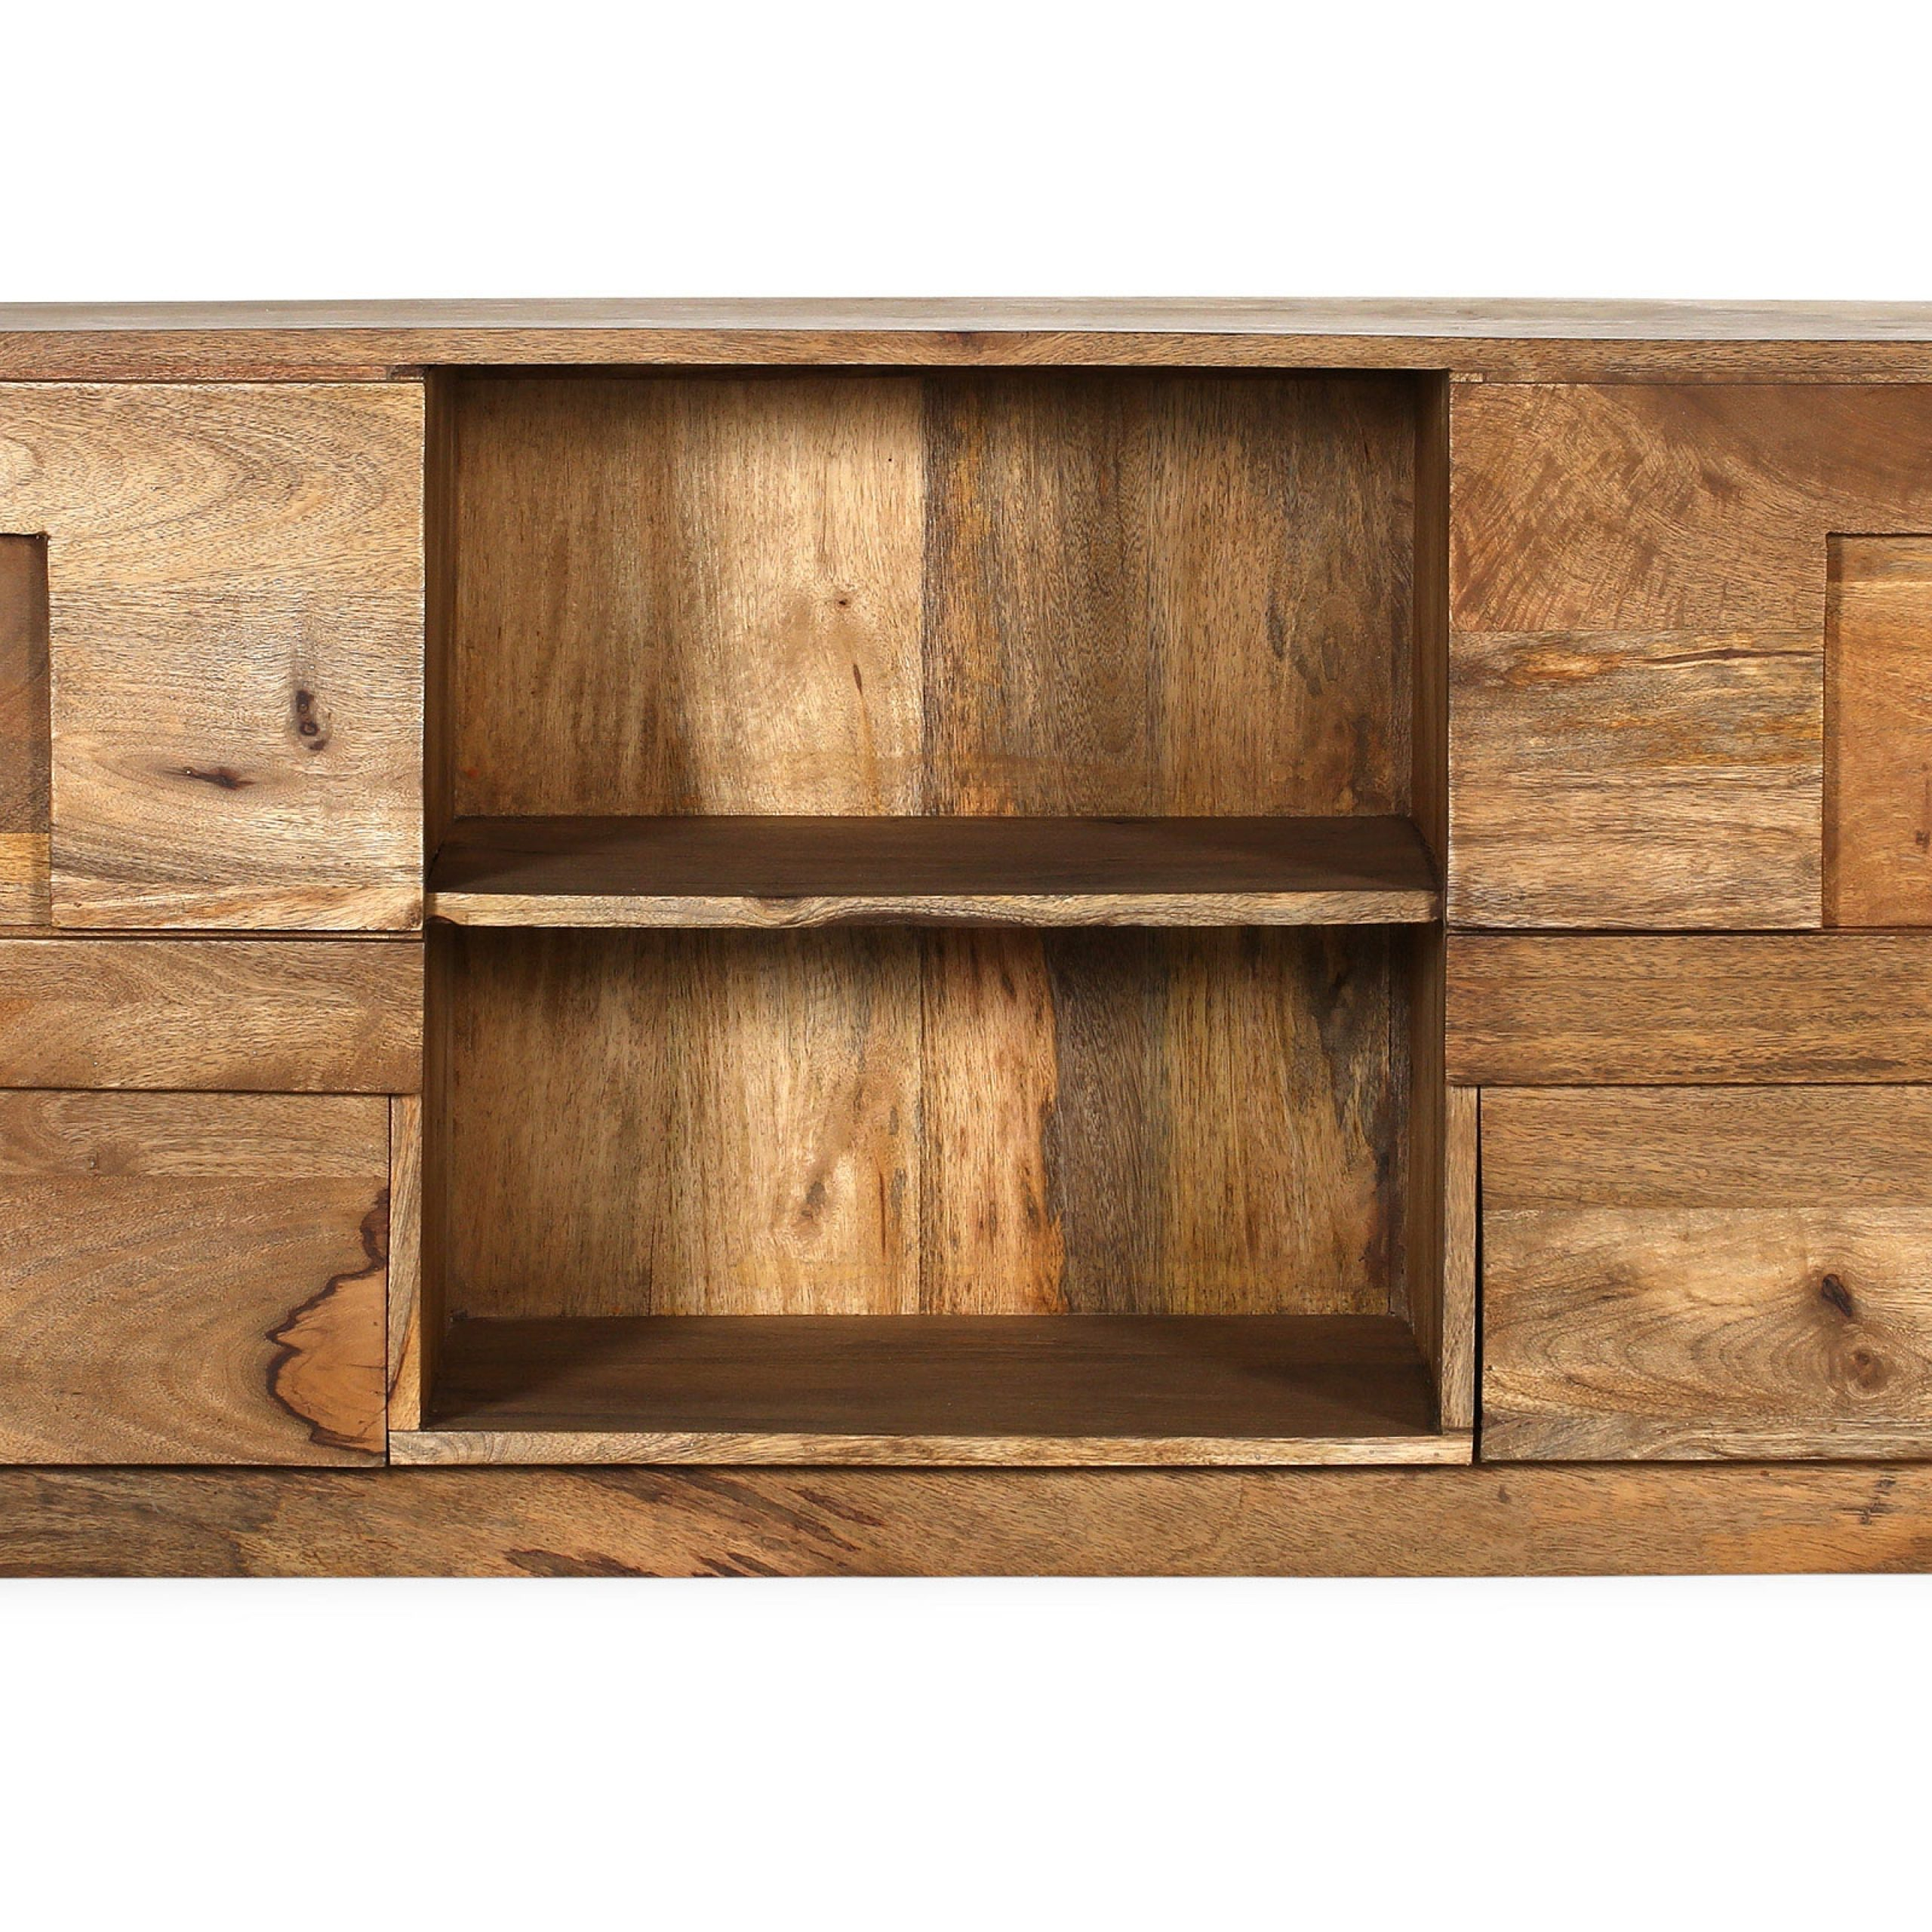 Well Known Jakarta Tv Stands Regarding Buy Mango Tv Furniture – Jakarta Natural Wood 58881 In The (View 3 of 10)